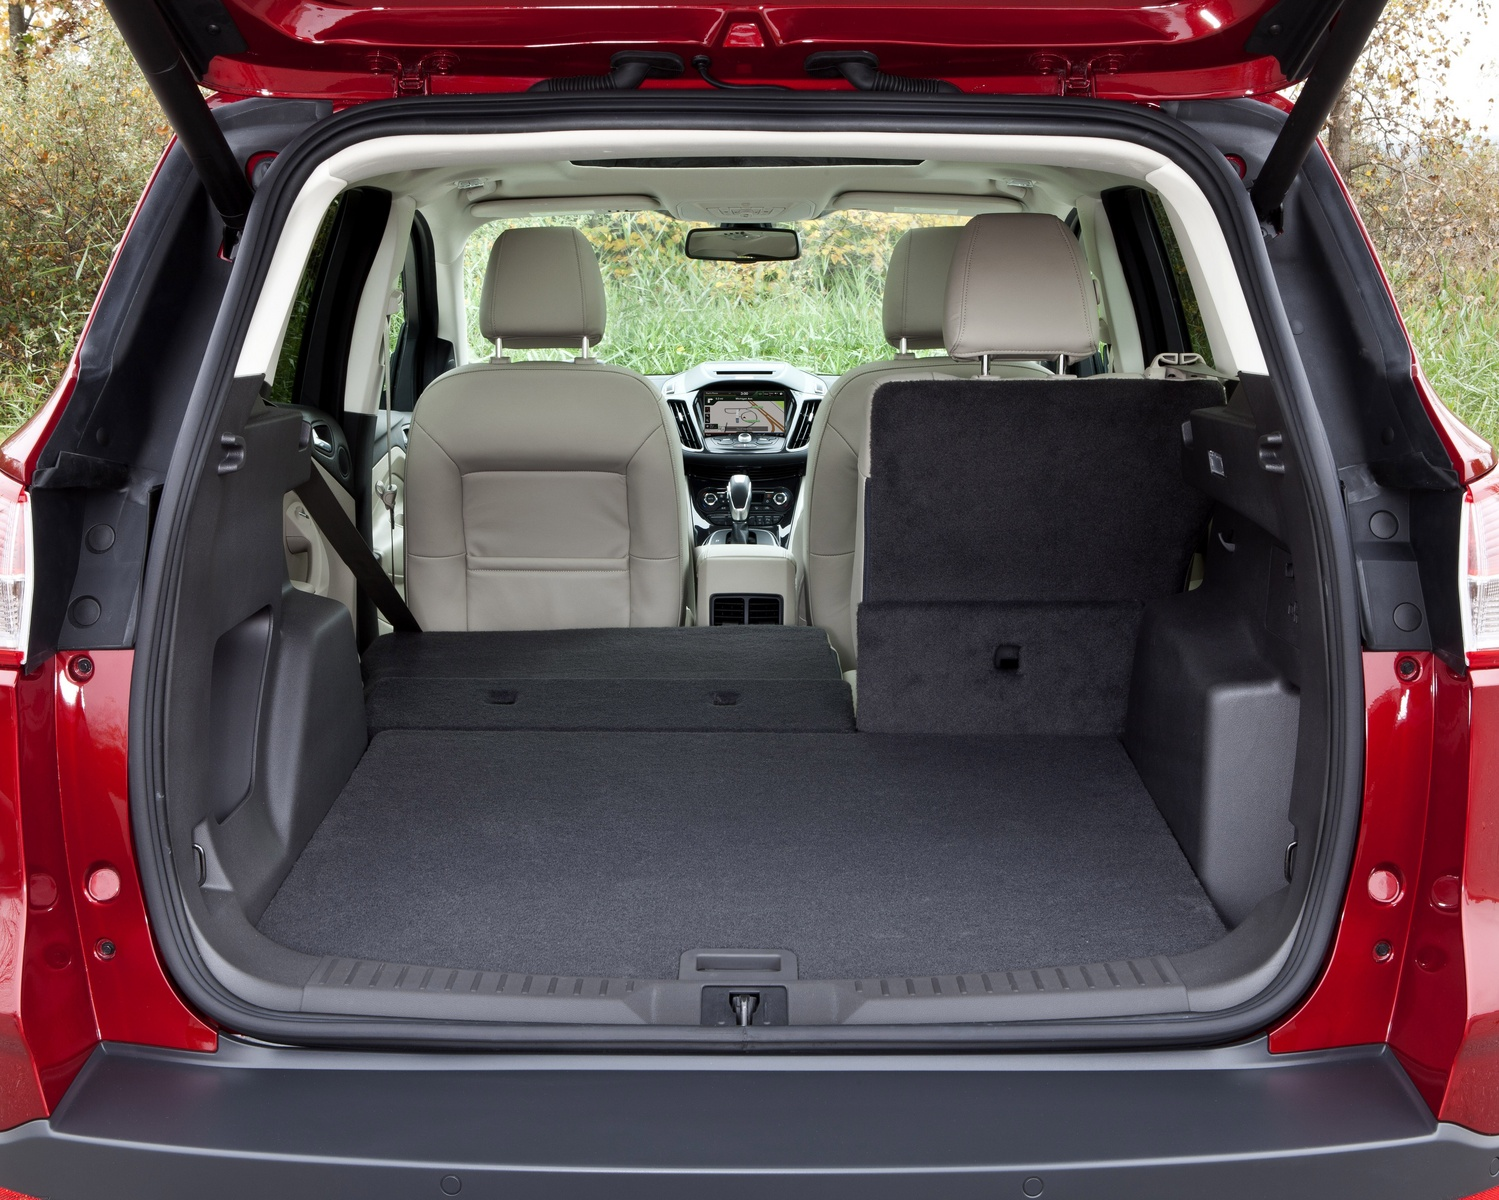 2013 Ford Escape, Rear cargo area, interior, form_and_function